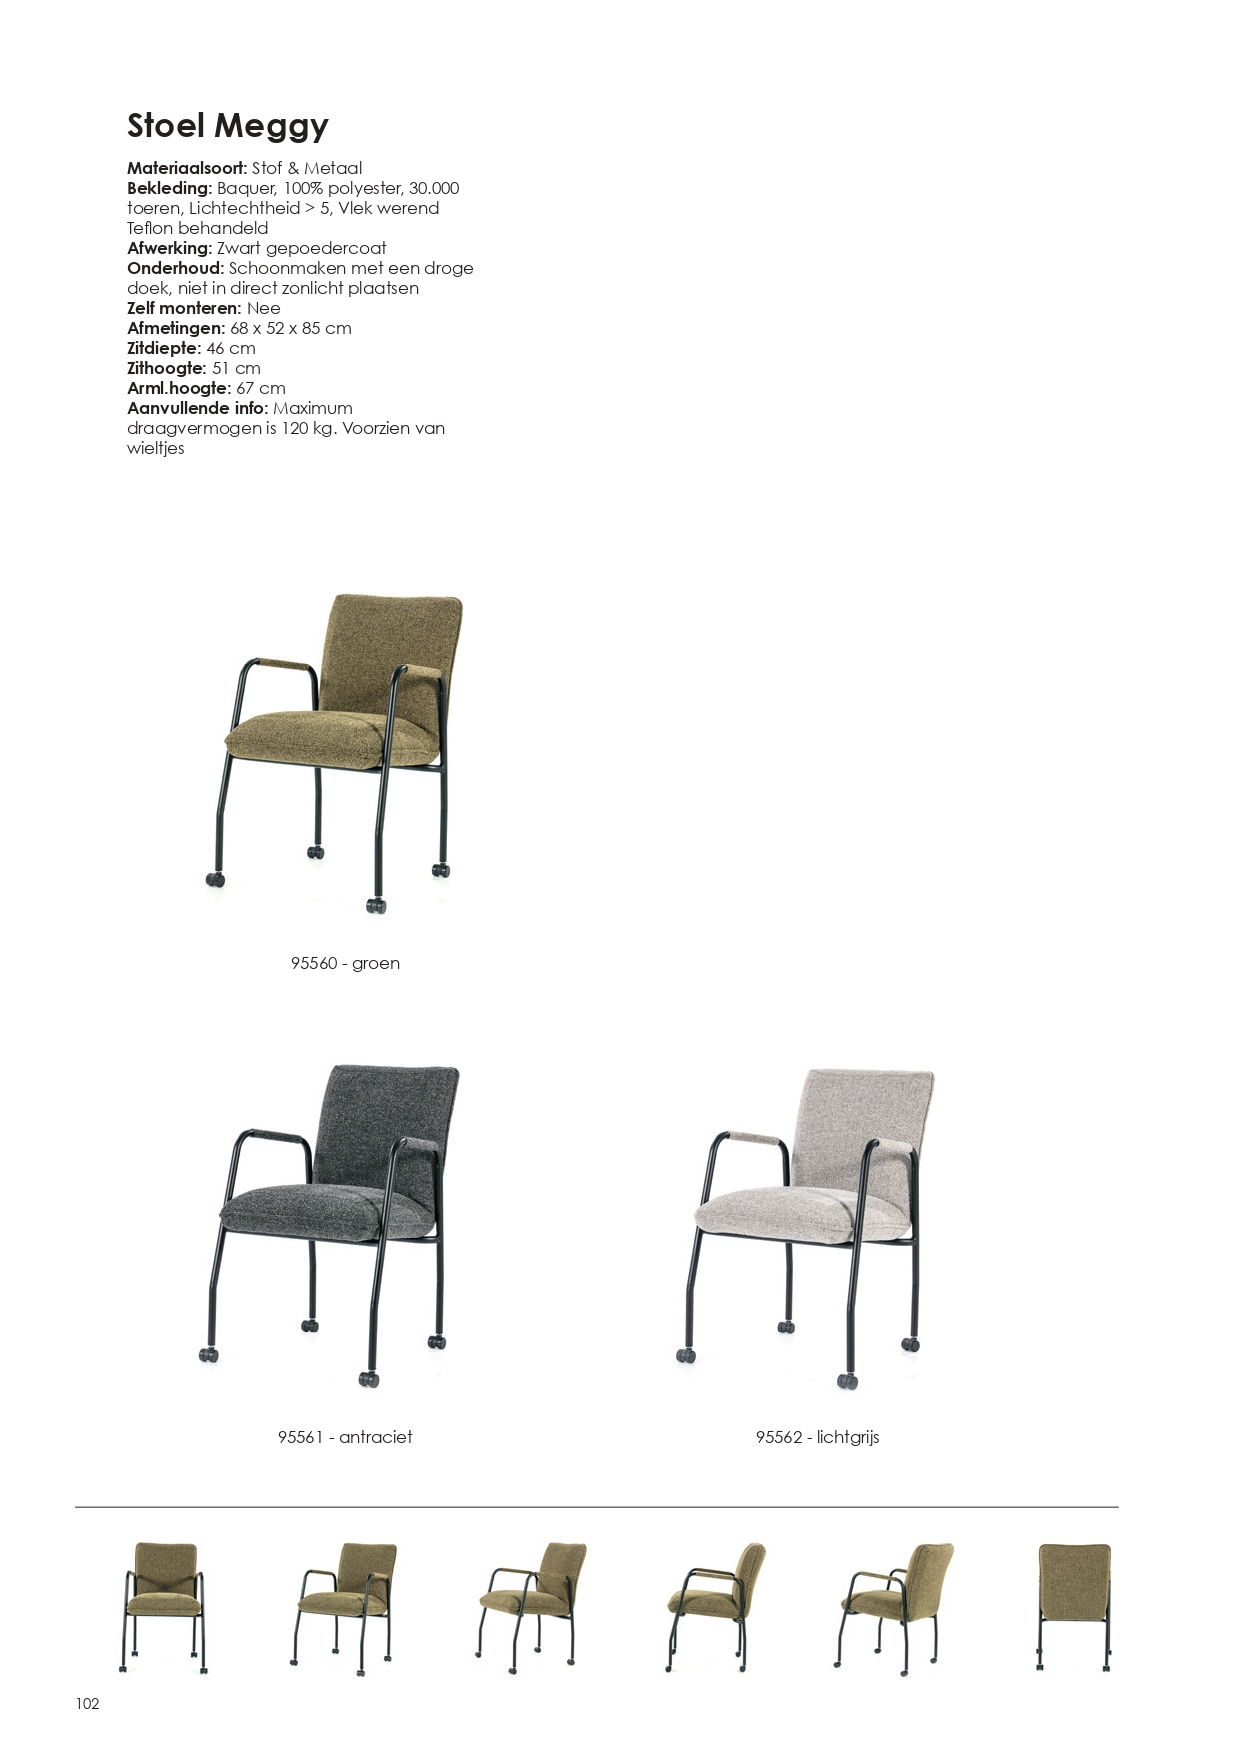 Catalogus SS21 NL_page-0102